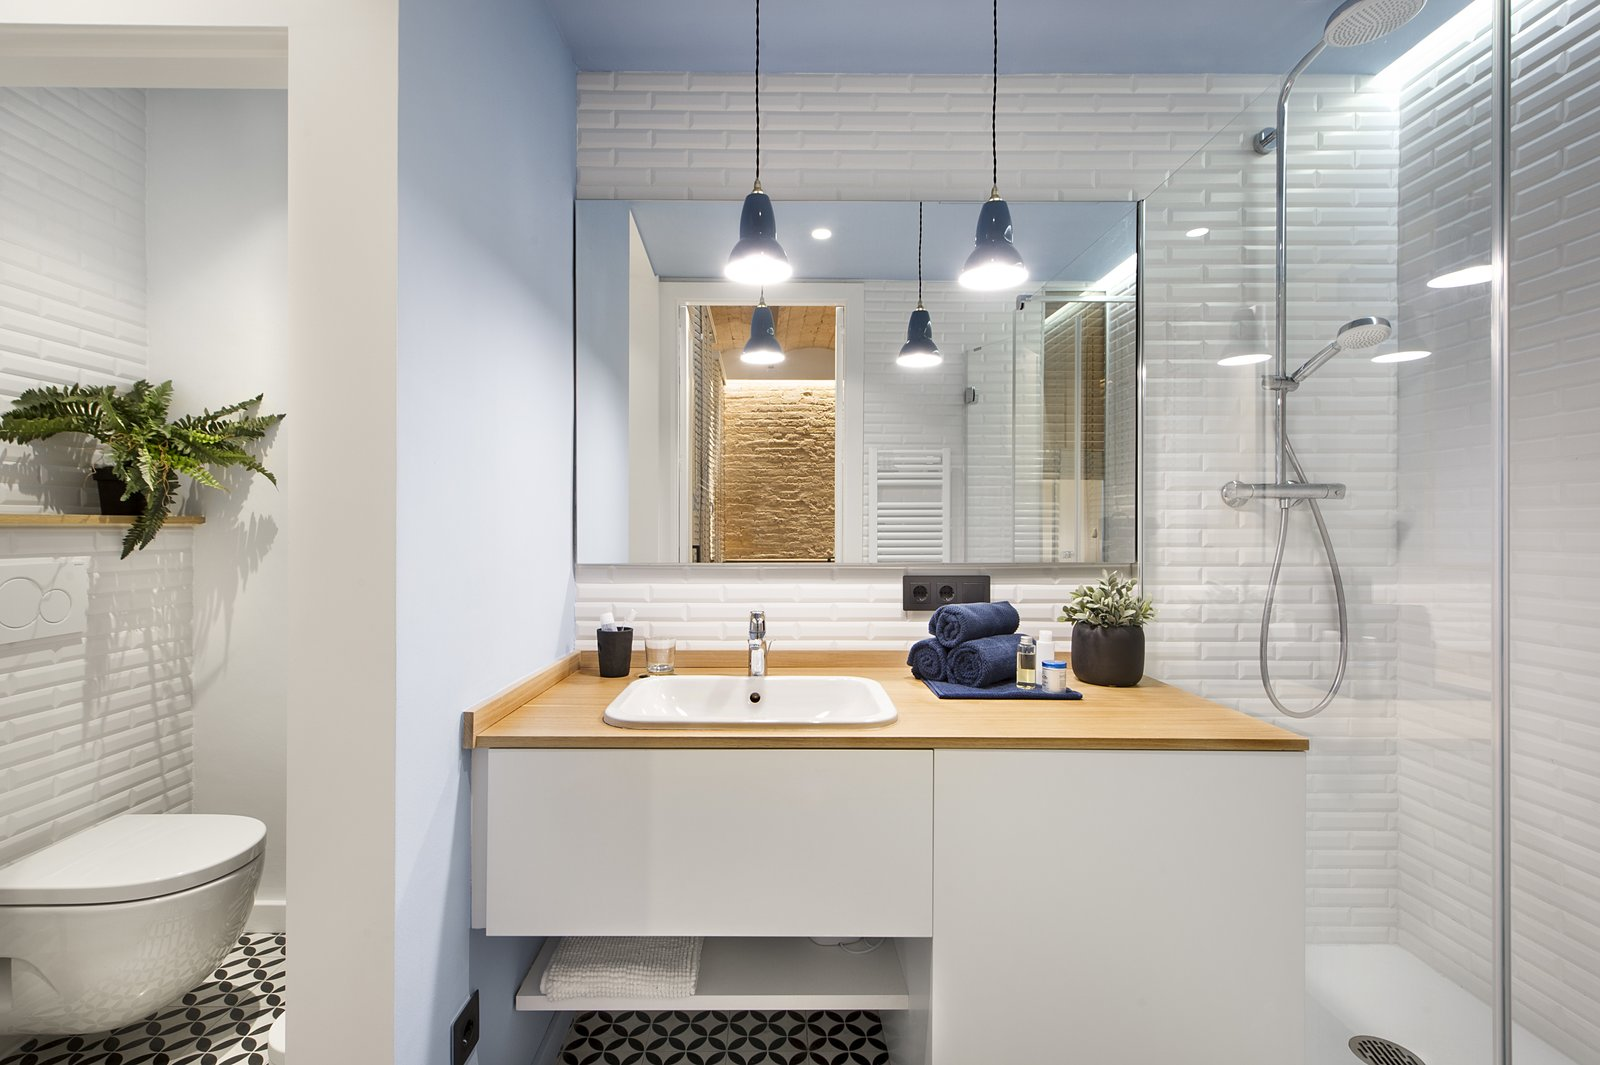 Bath Room, Wood Counter, Pendant Lighting, Enclosed Shower, One Piece Toilet, Drop In Sink, Ceramic Tile Wall, and Ceramic Tile Floor  Photo 8 of 11 in A Smart Layout Maximizes Space in This Compact Urban Beach Apartment in Barcelona